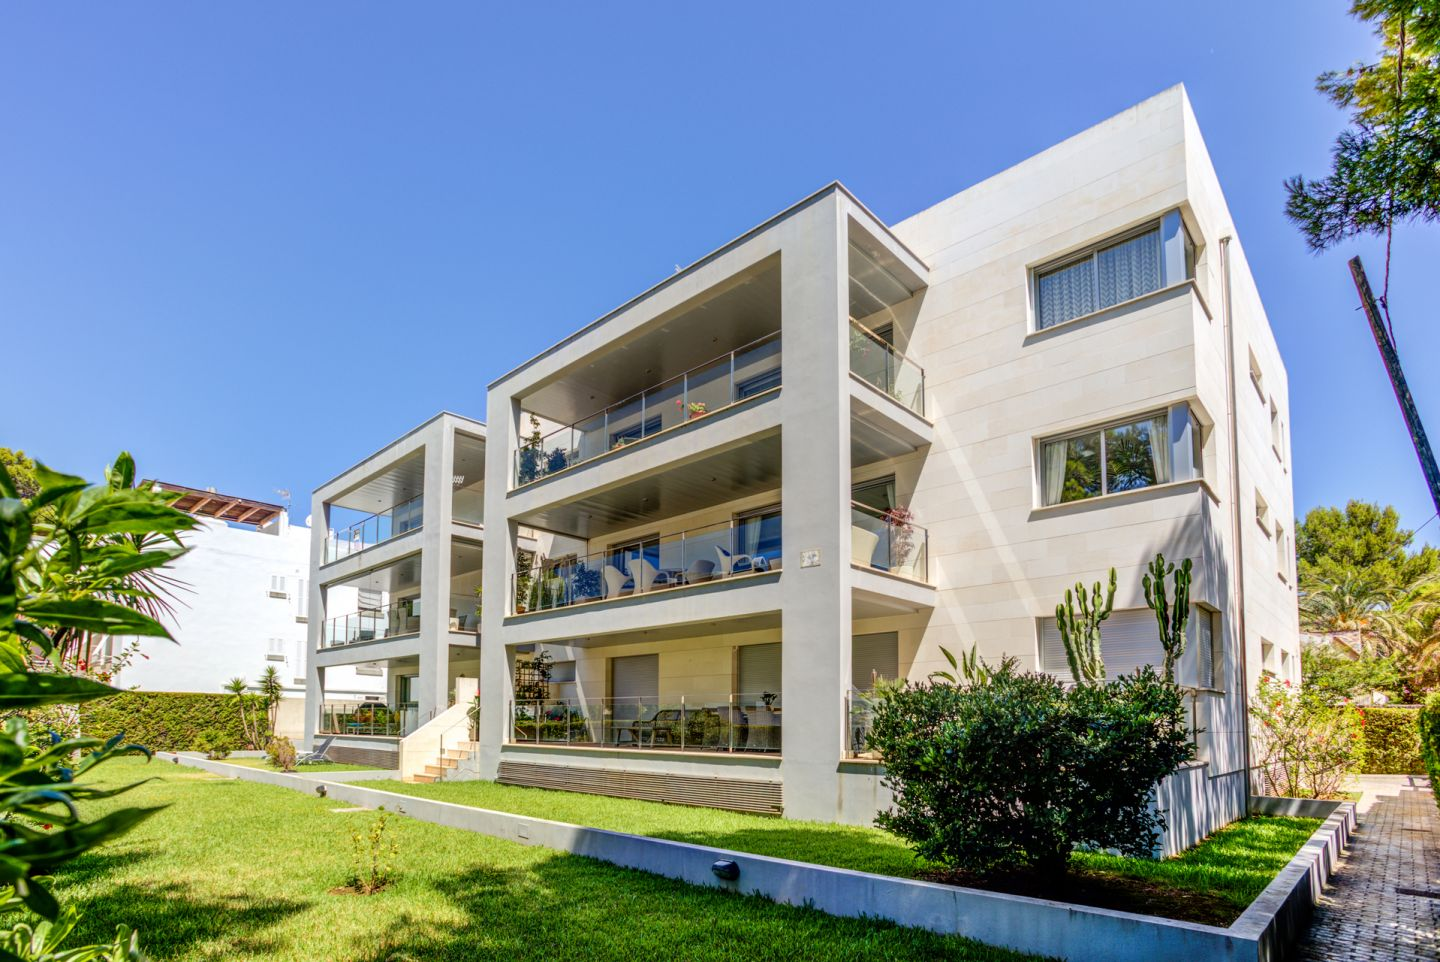 3 Bed Apartment for sale in Puerto Pollensa 15